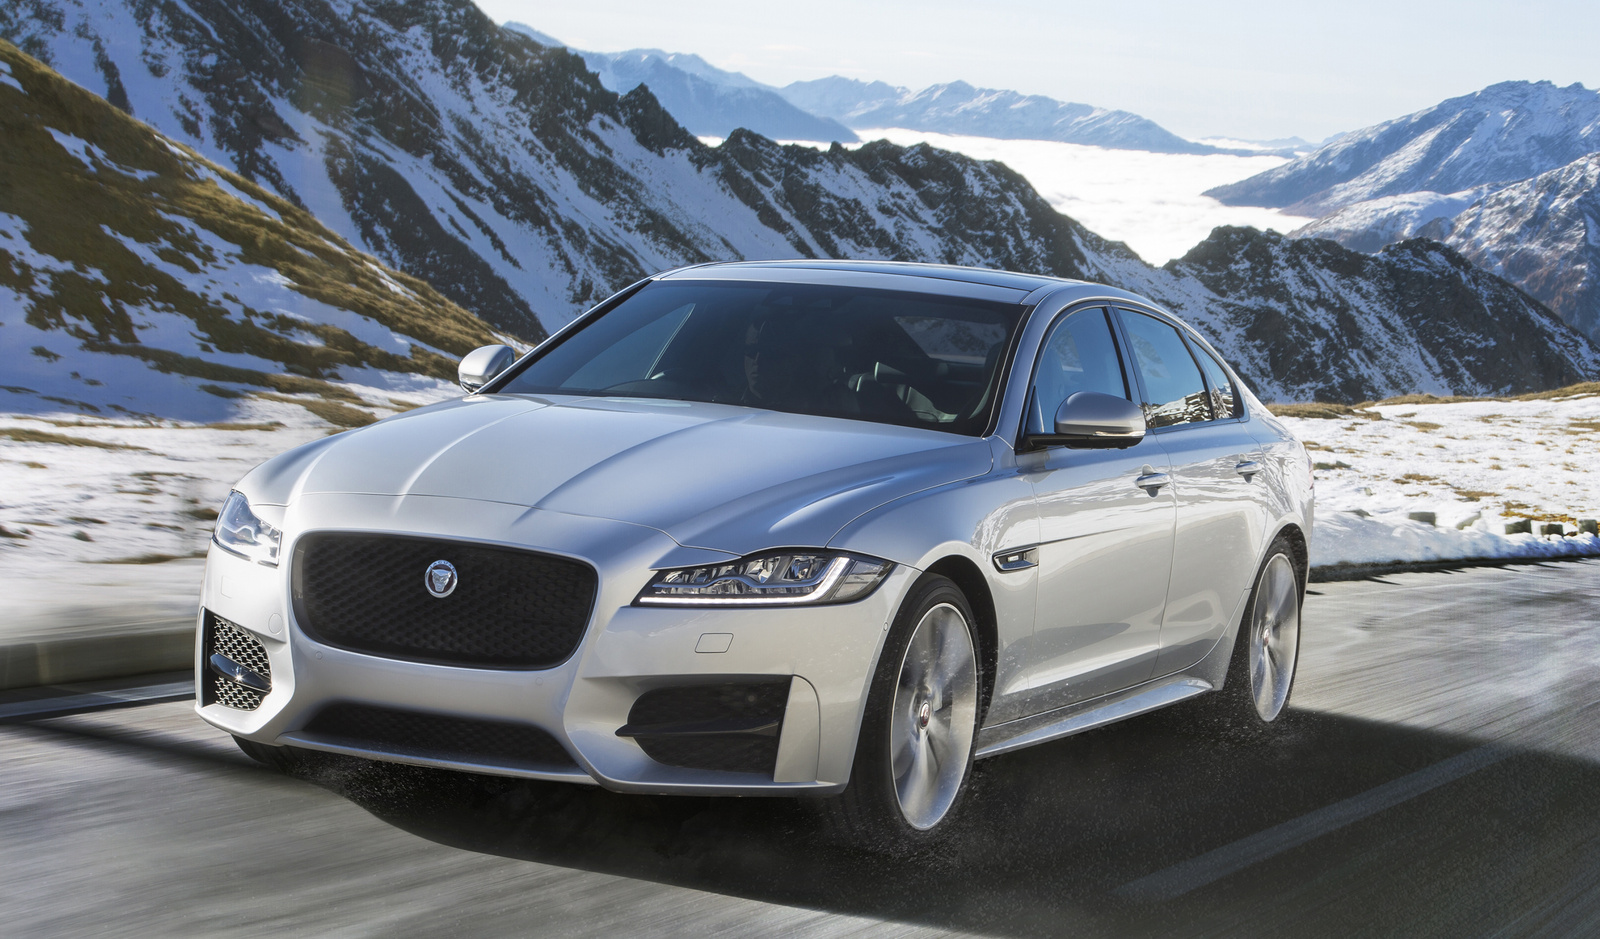 review jaguar test supercharged driver car xf and s original reviews photo r sport awd